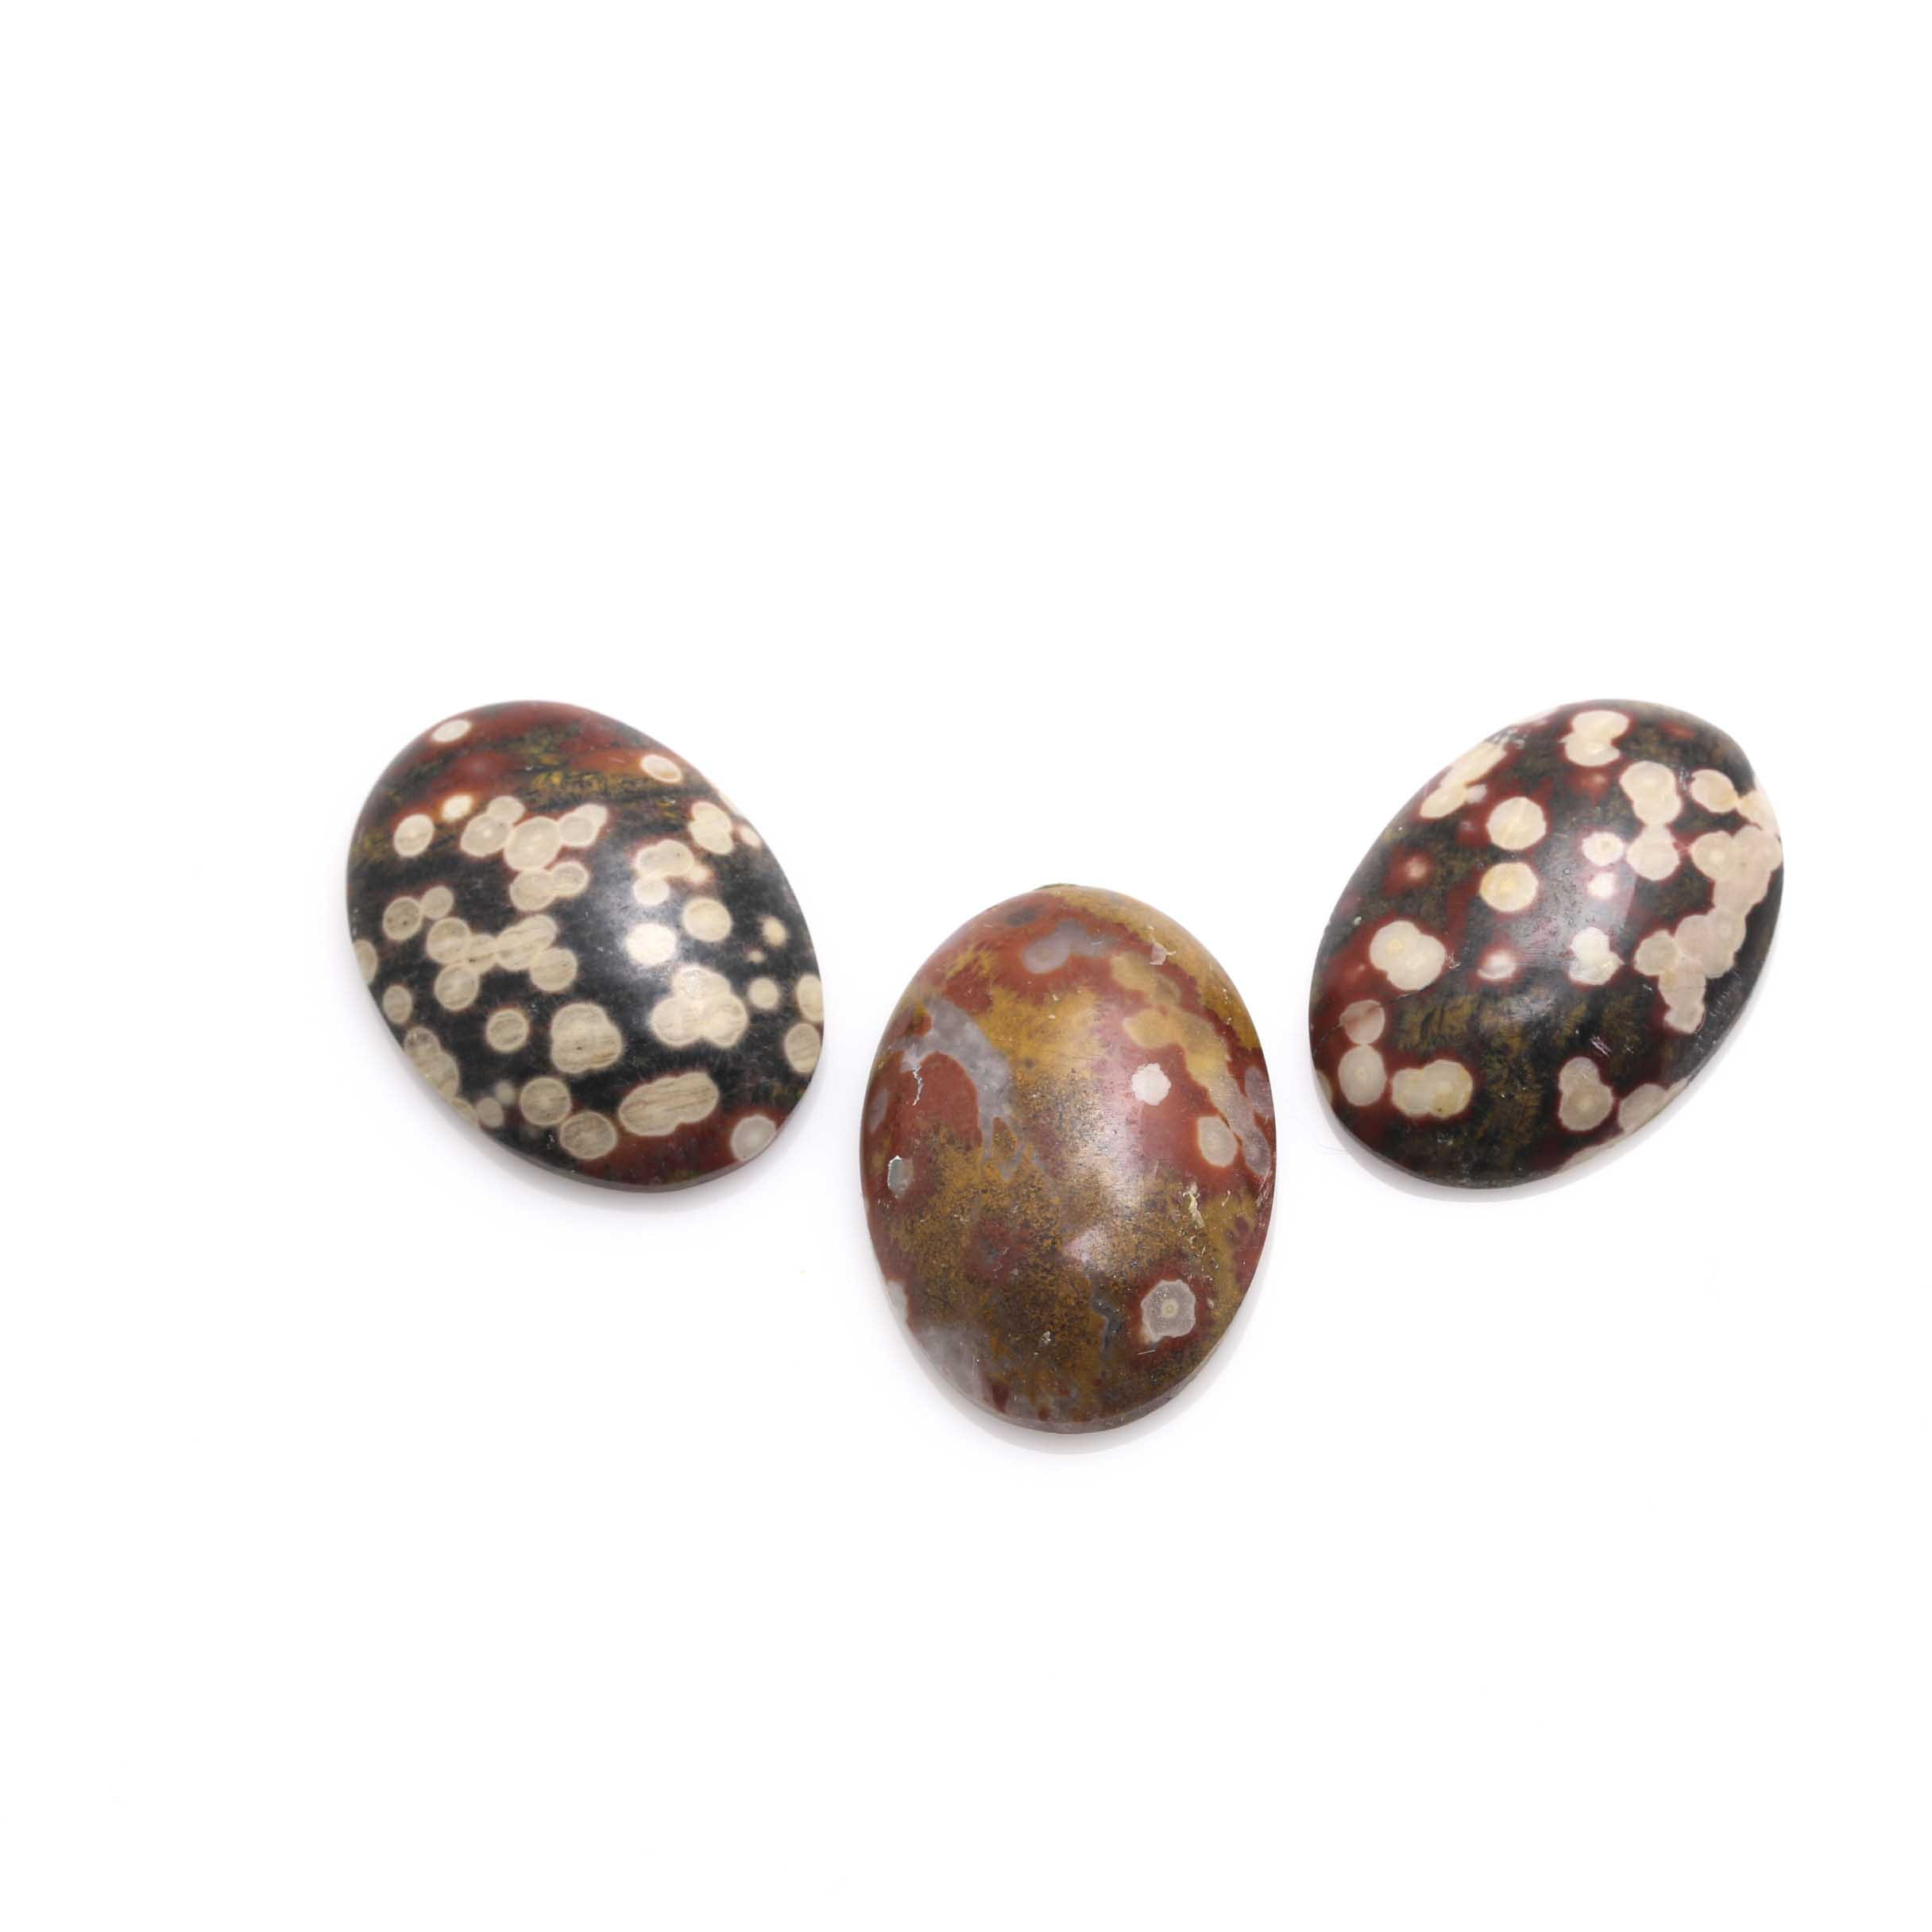 Loose Oval Jasper Gemstones